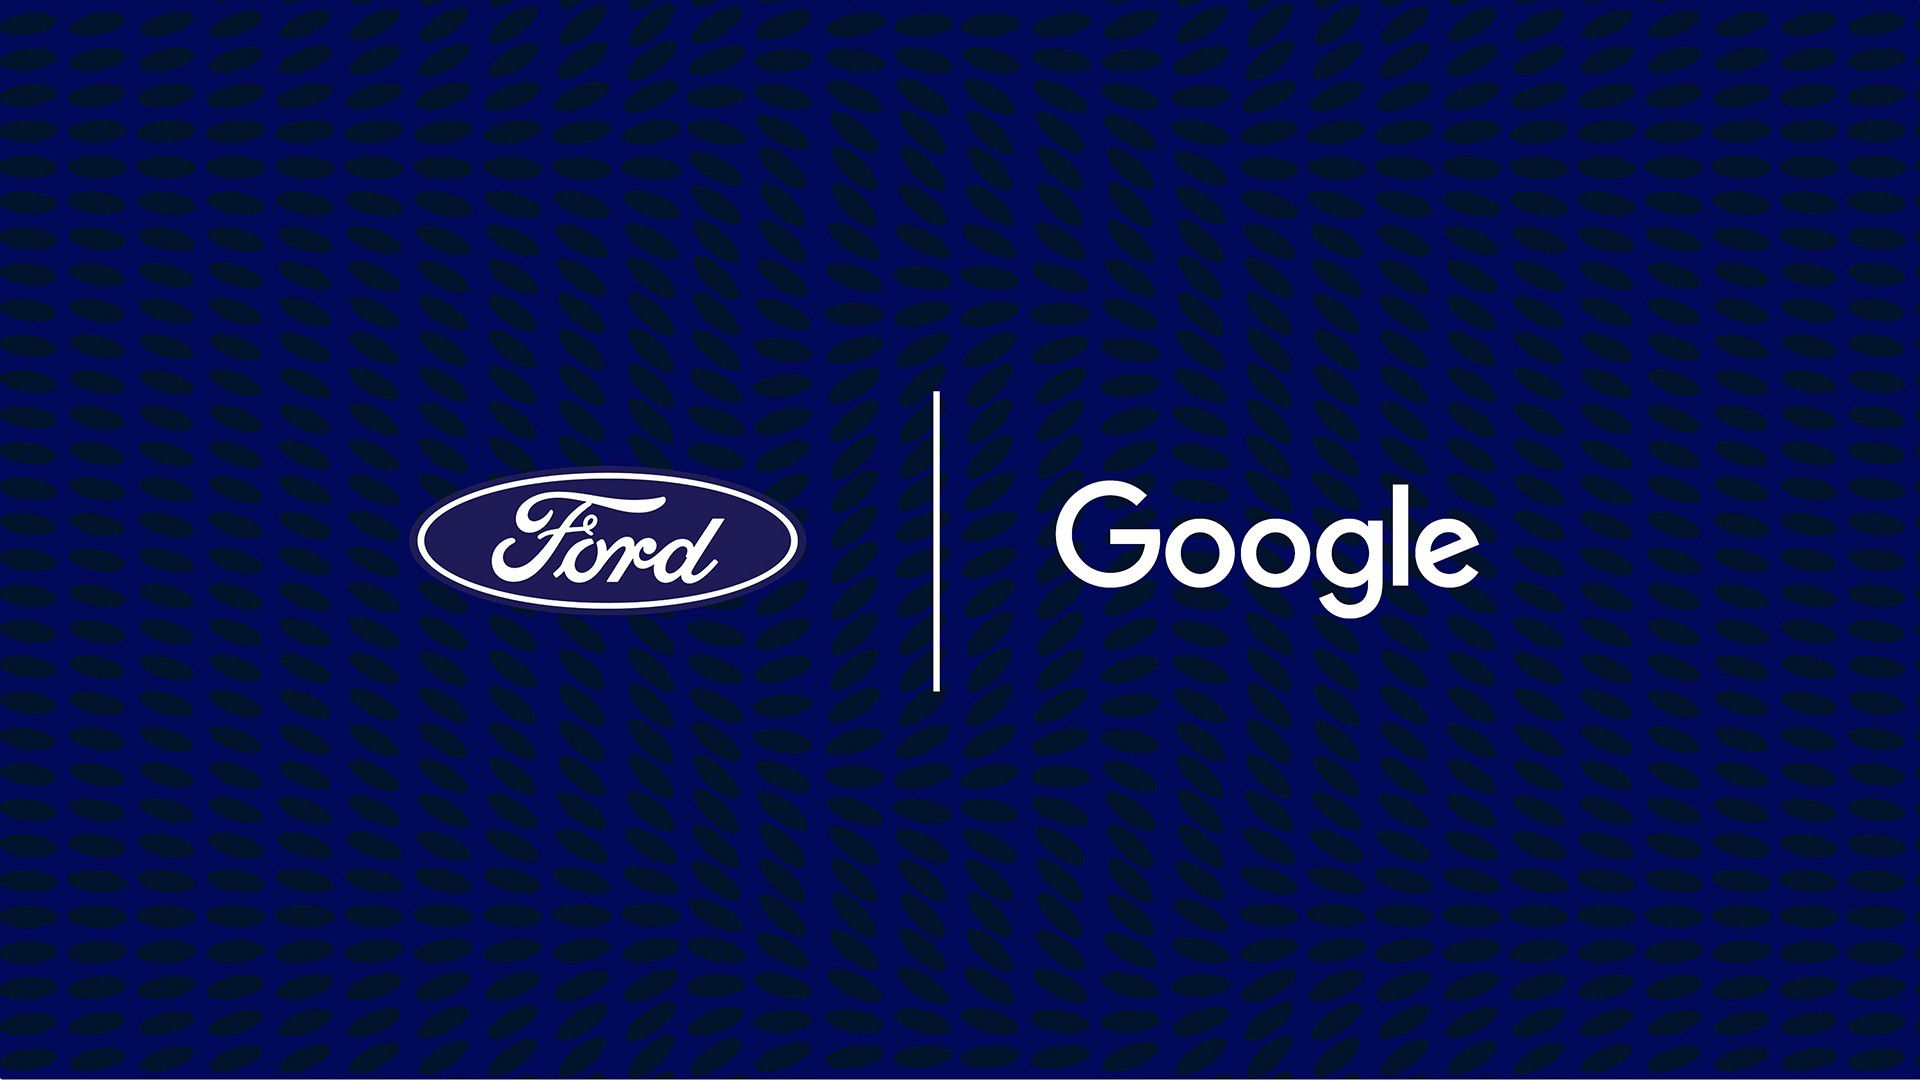 Ford promo image showing their partnership with Google